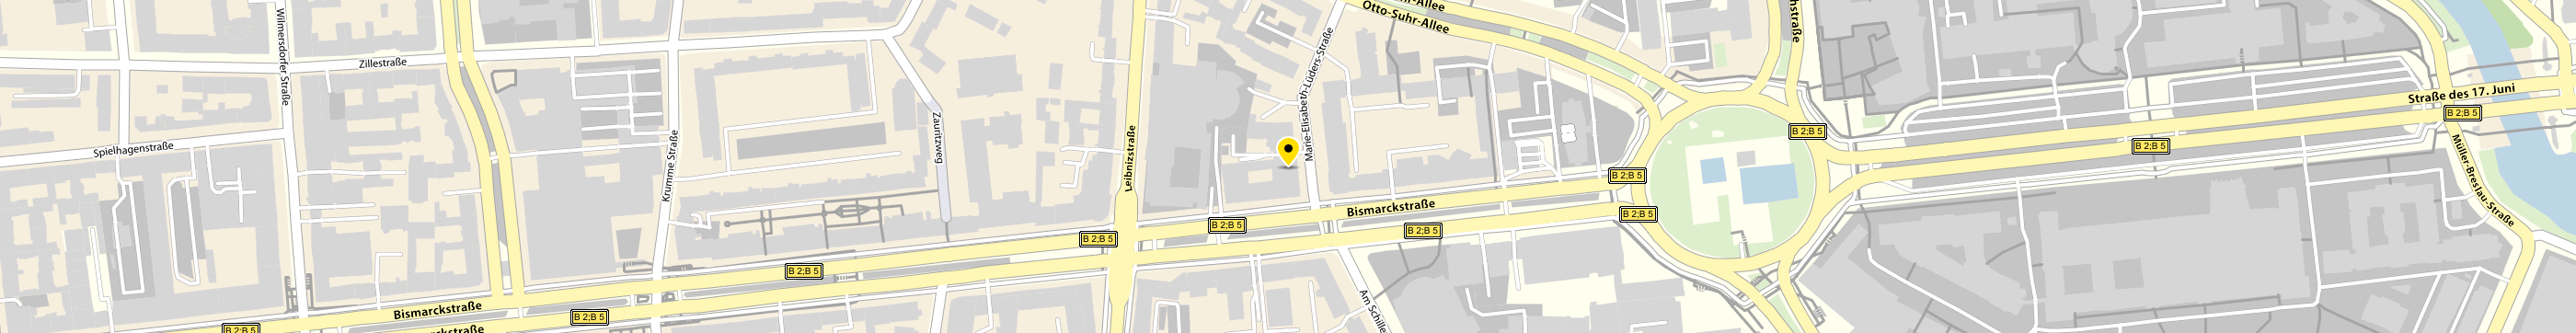 VERBI Software GmbH in Berlin-Charlottenburg Karte